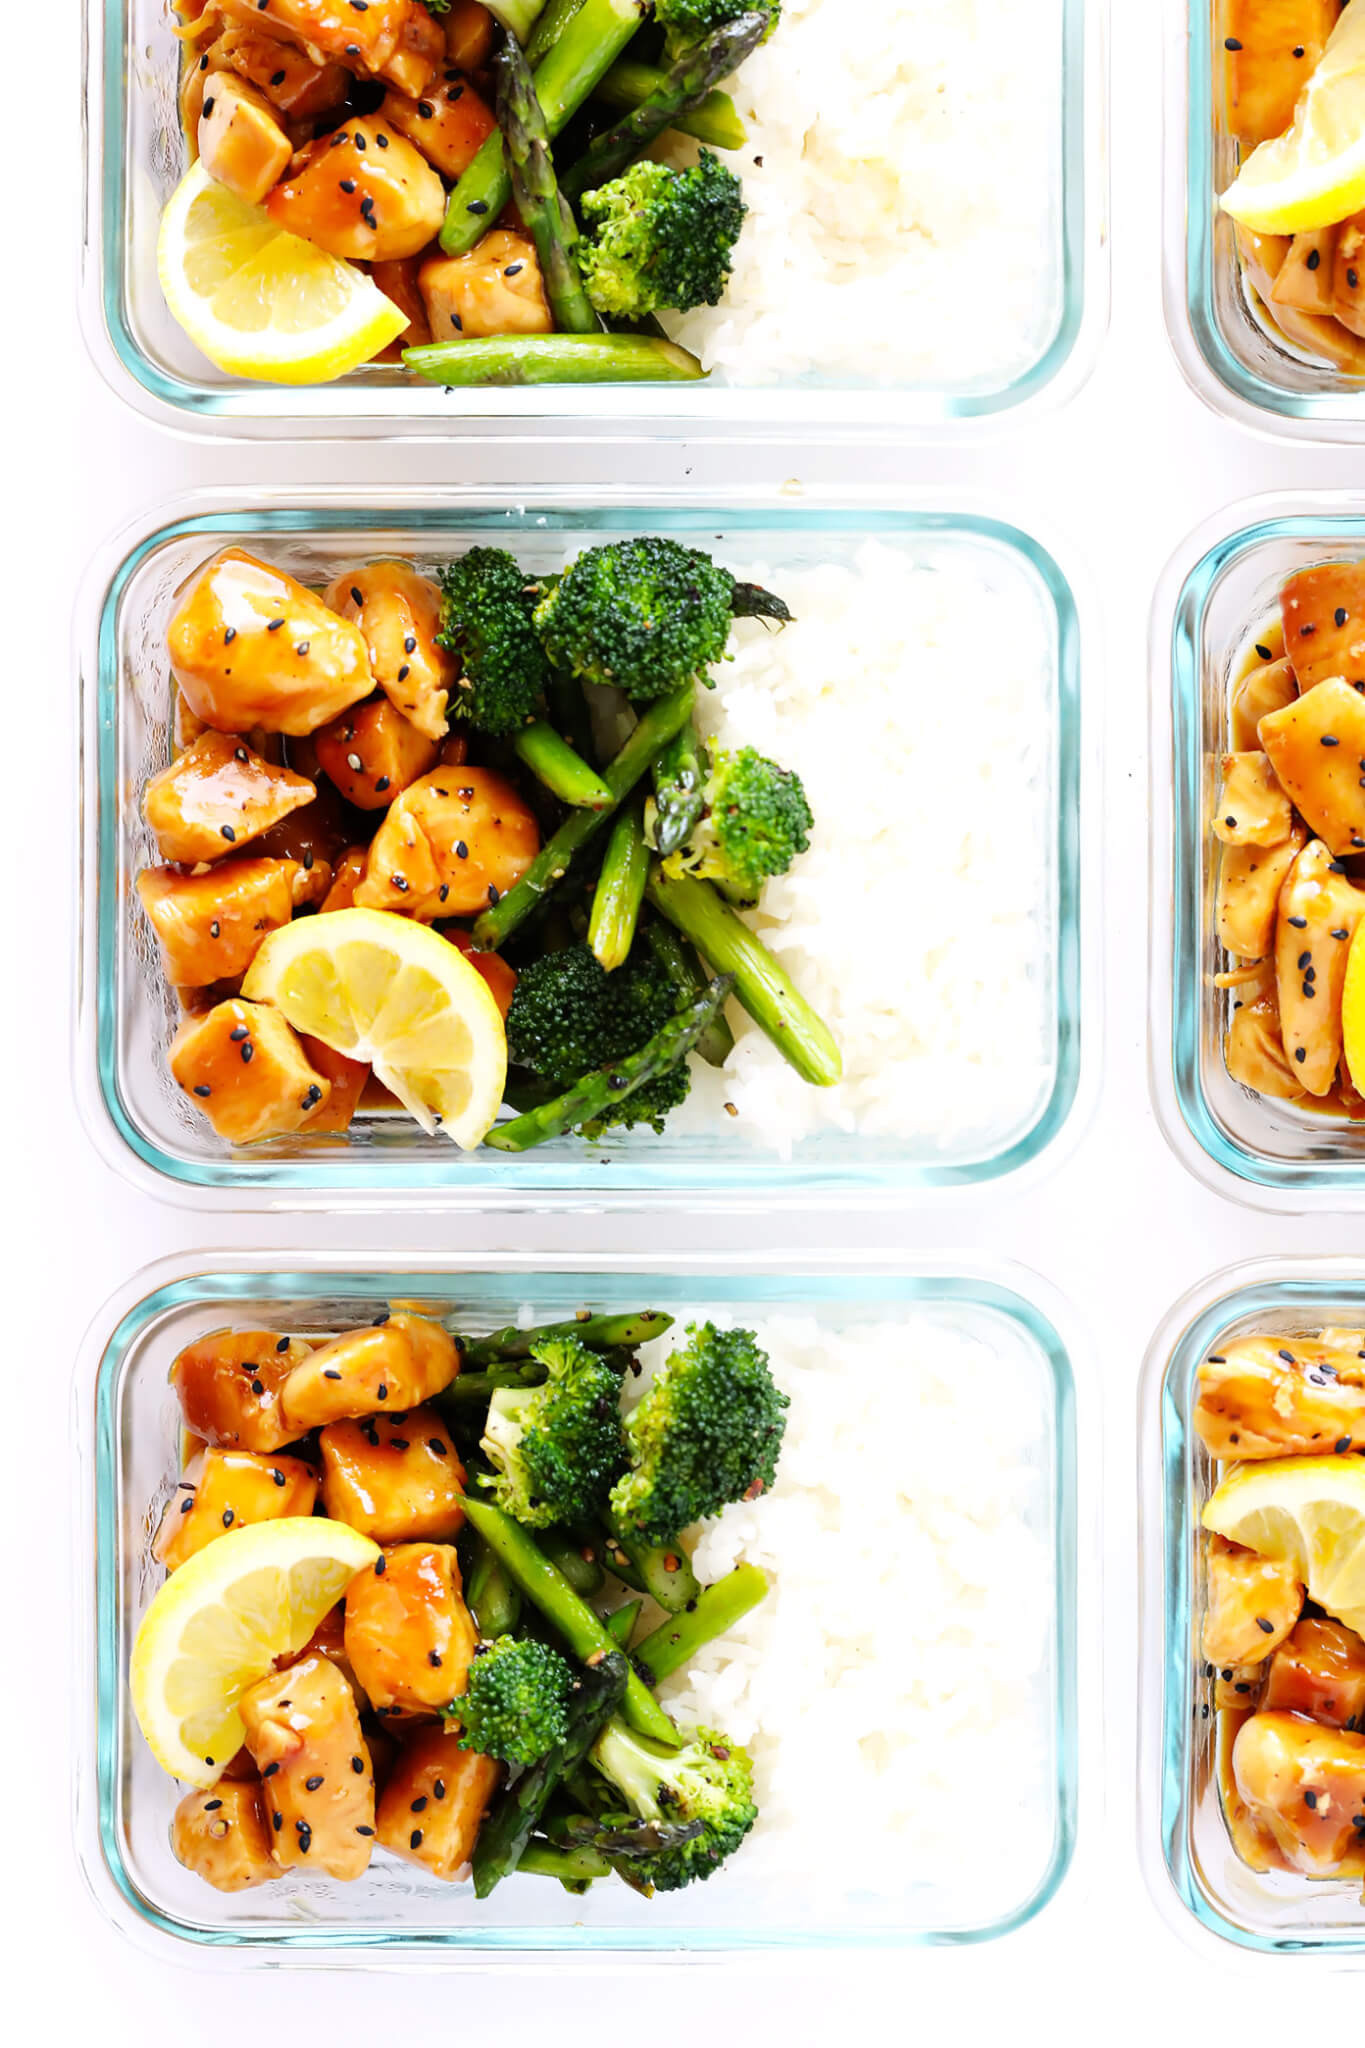 Healthy Lunches And Dinners  Honey Lemon Chicken Bowls Meal Prep